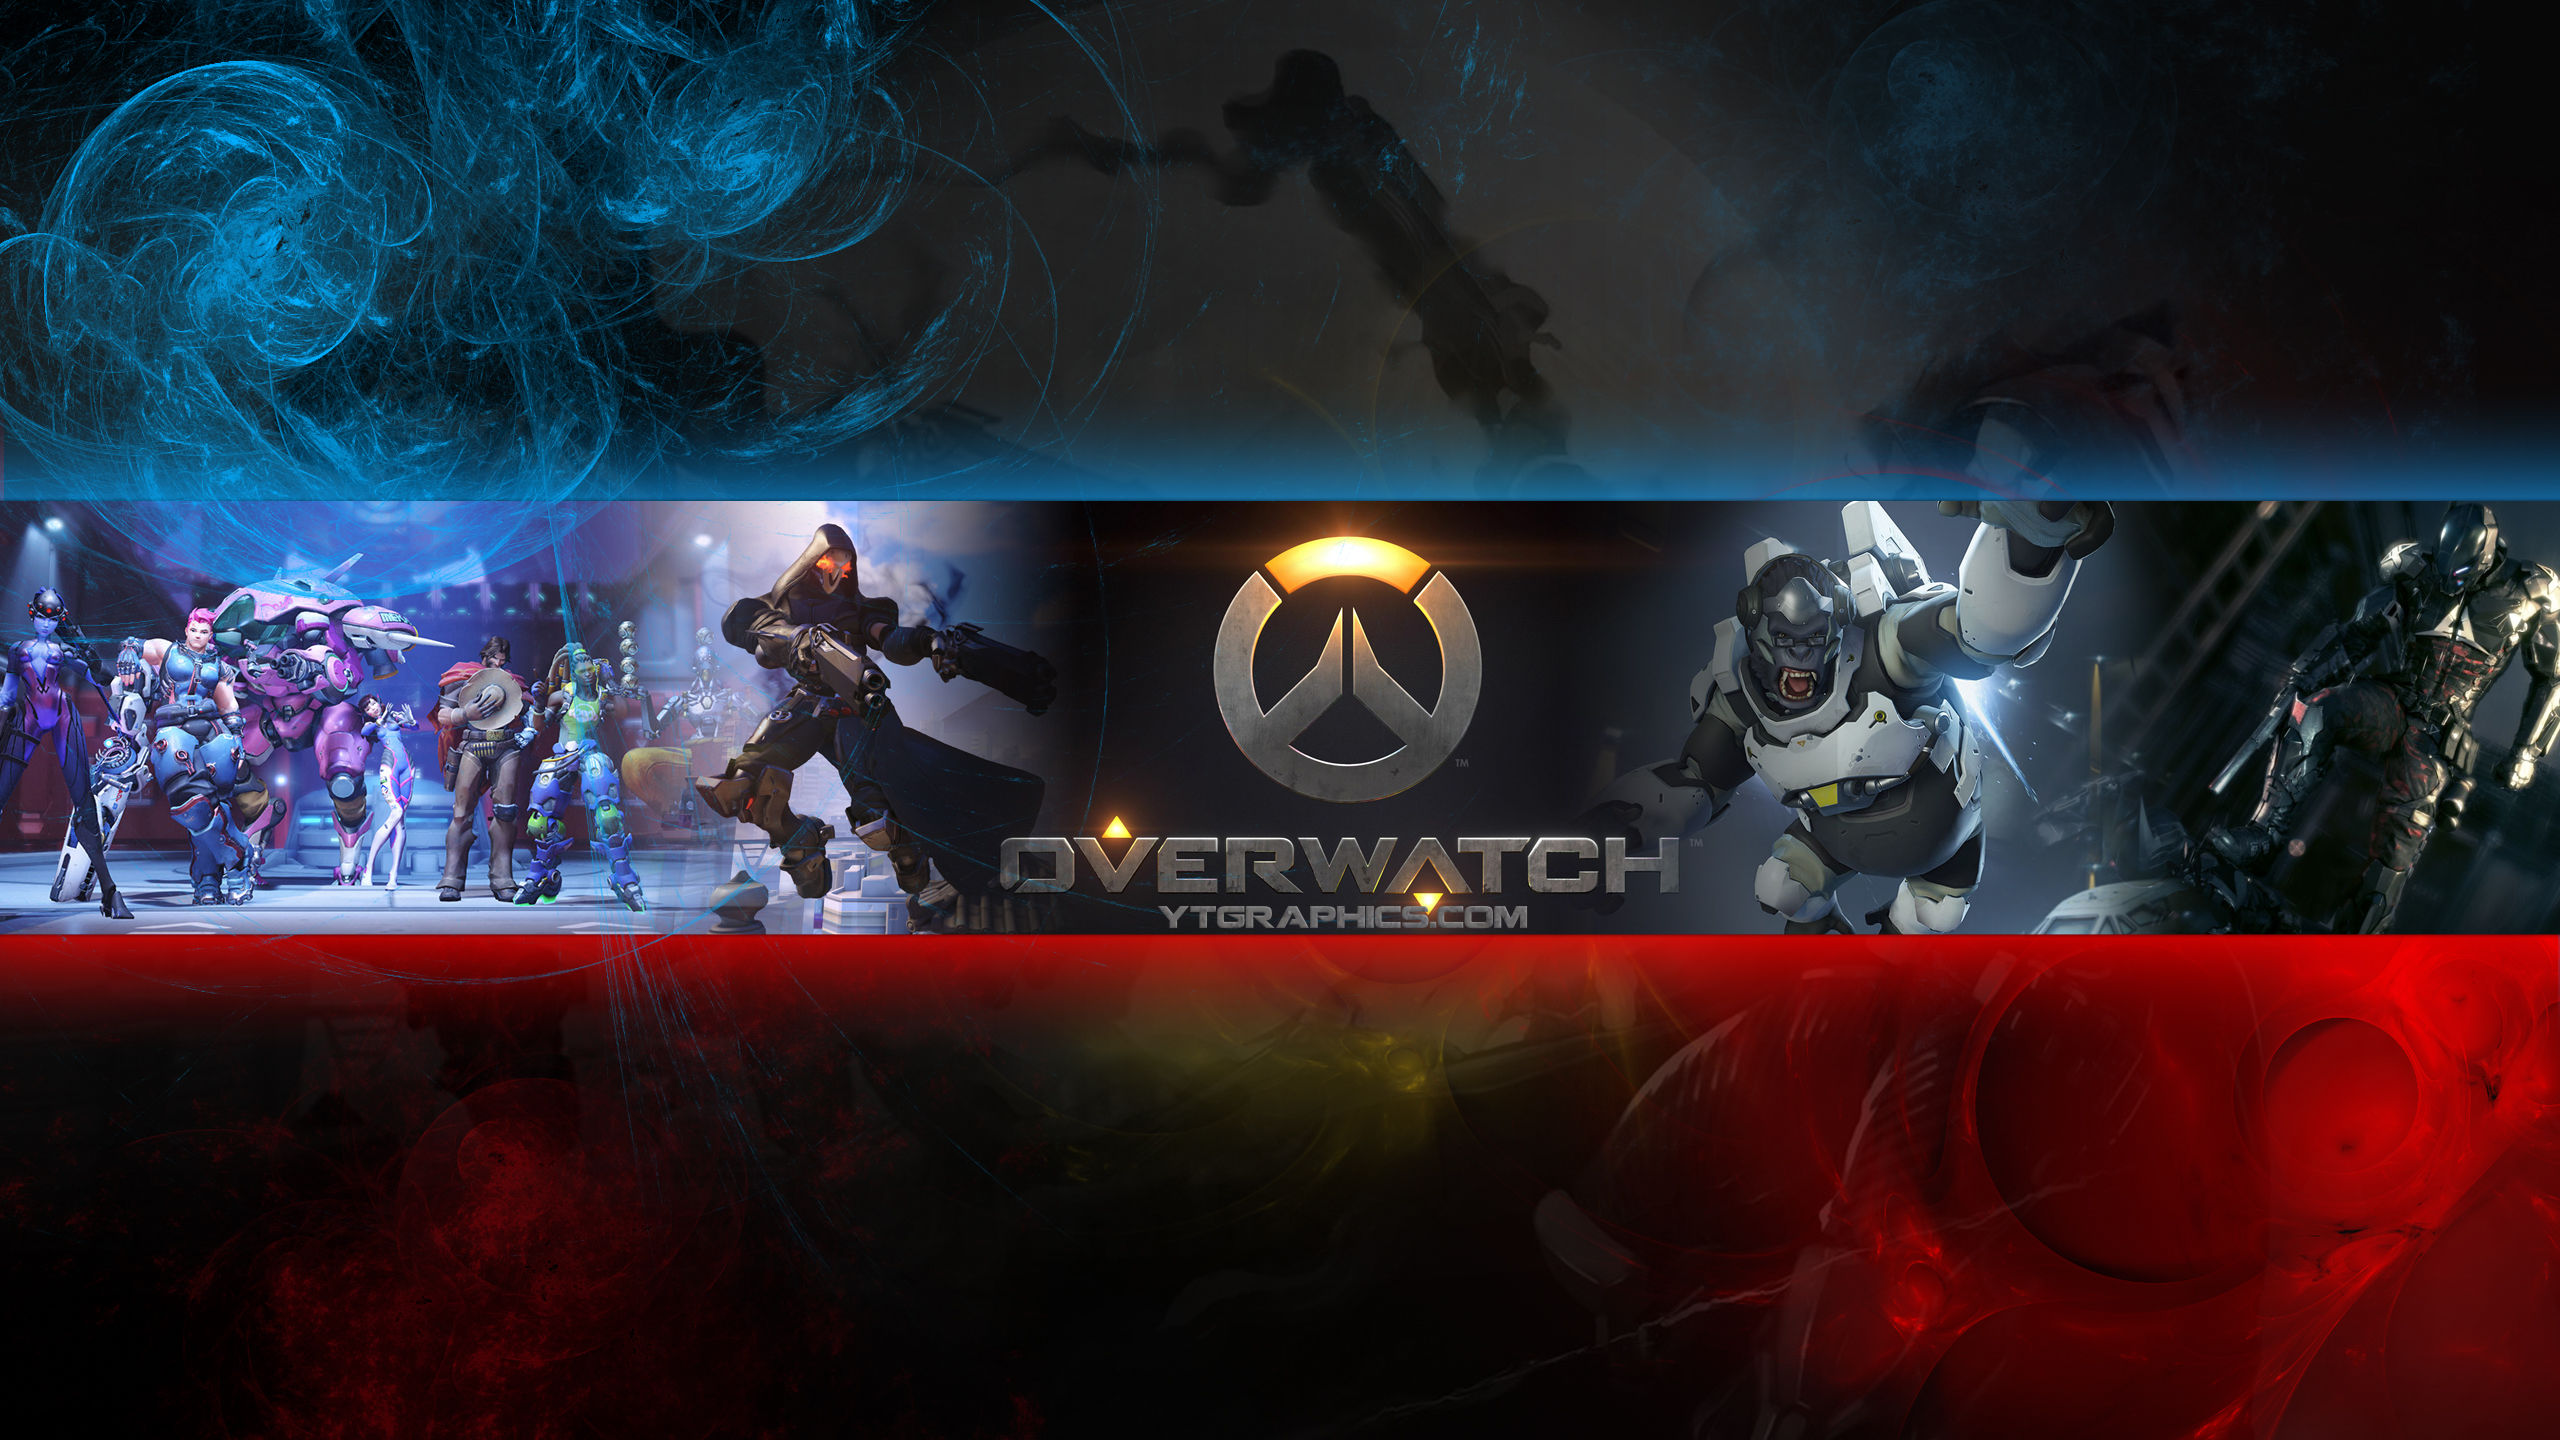 Overwatch Youtube Channel Art Banner